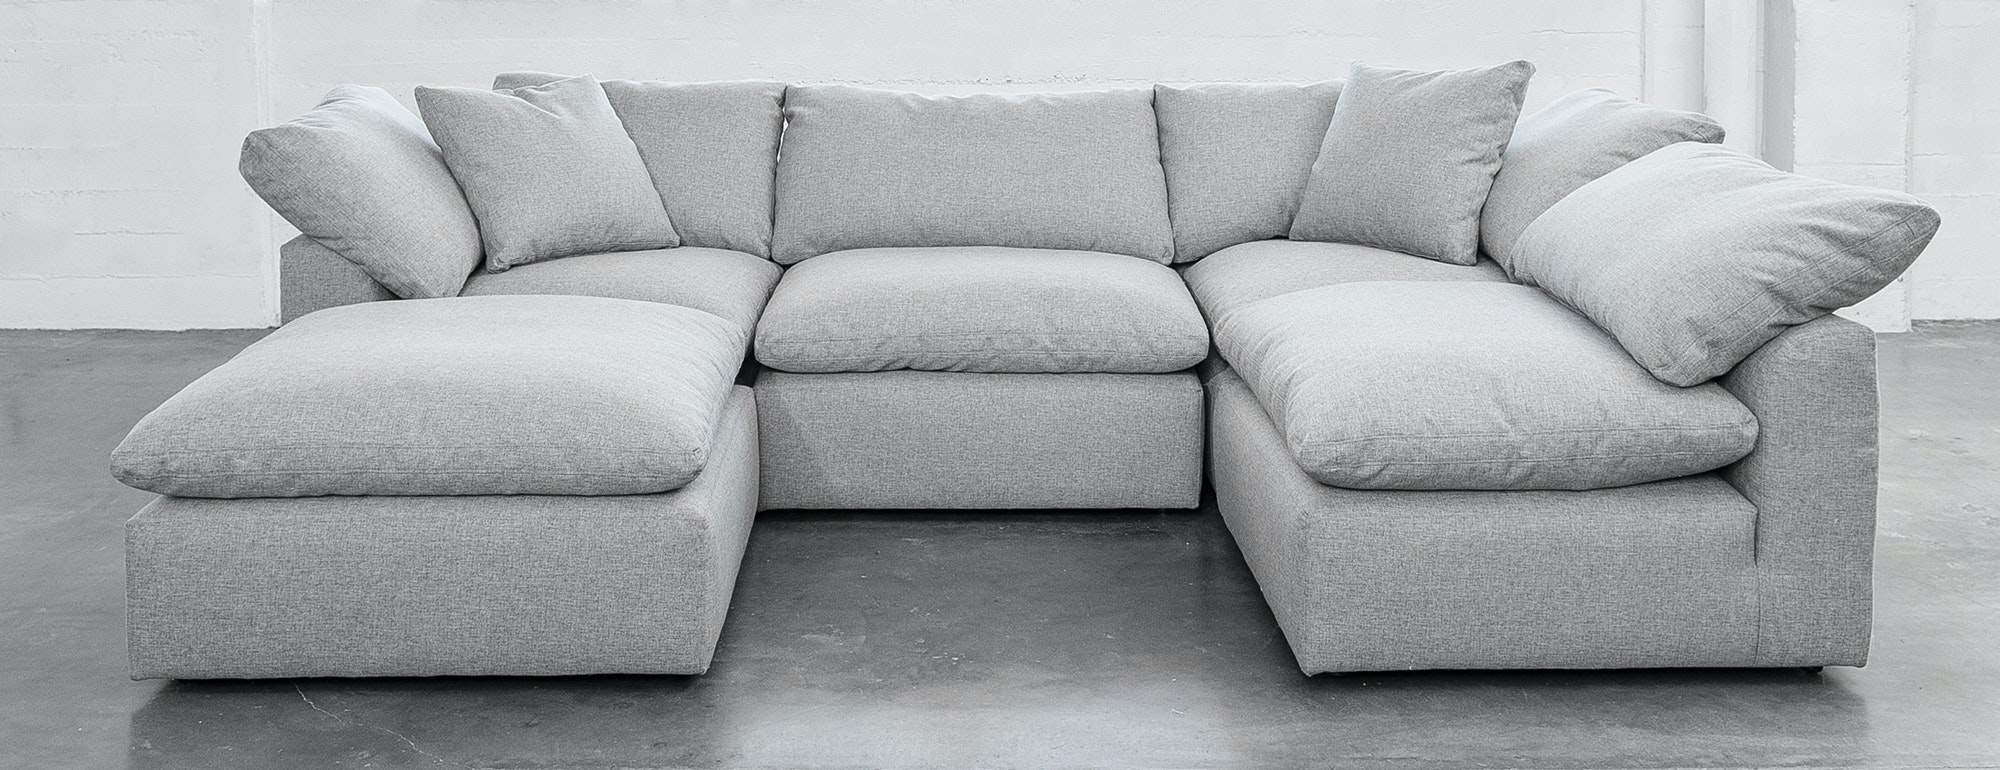 Product Image : u sofa sectional - Sectionals, Sofas & Couches